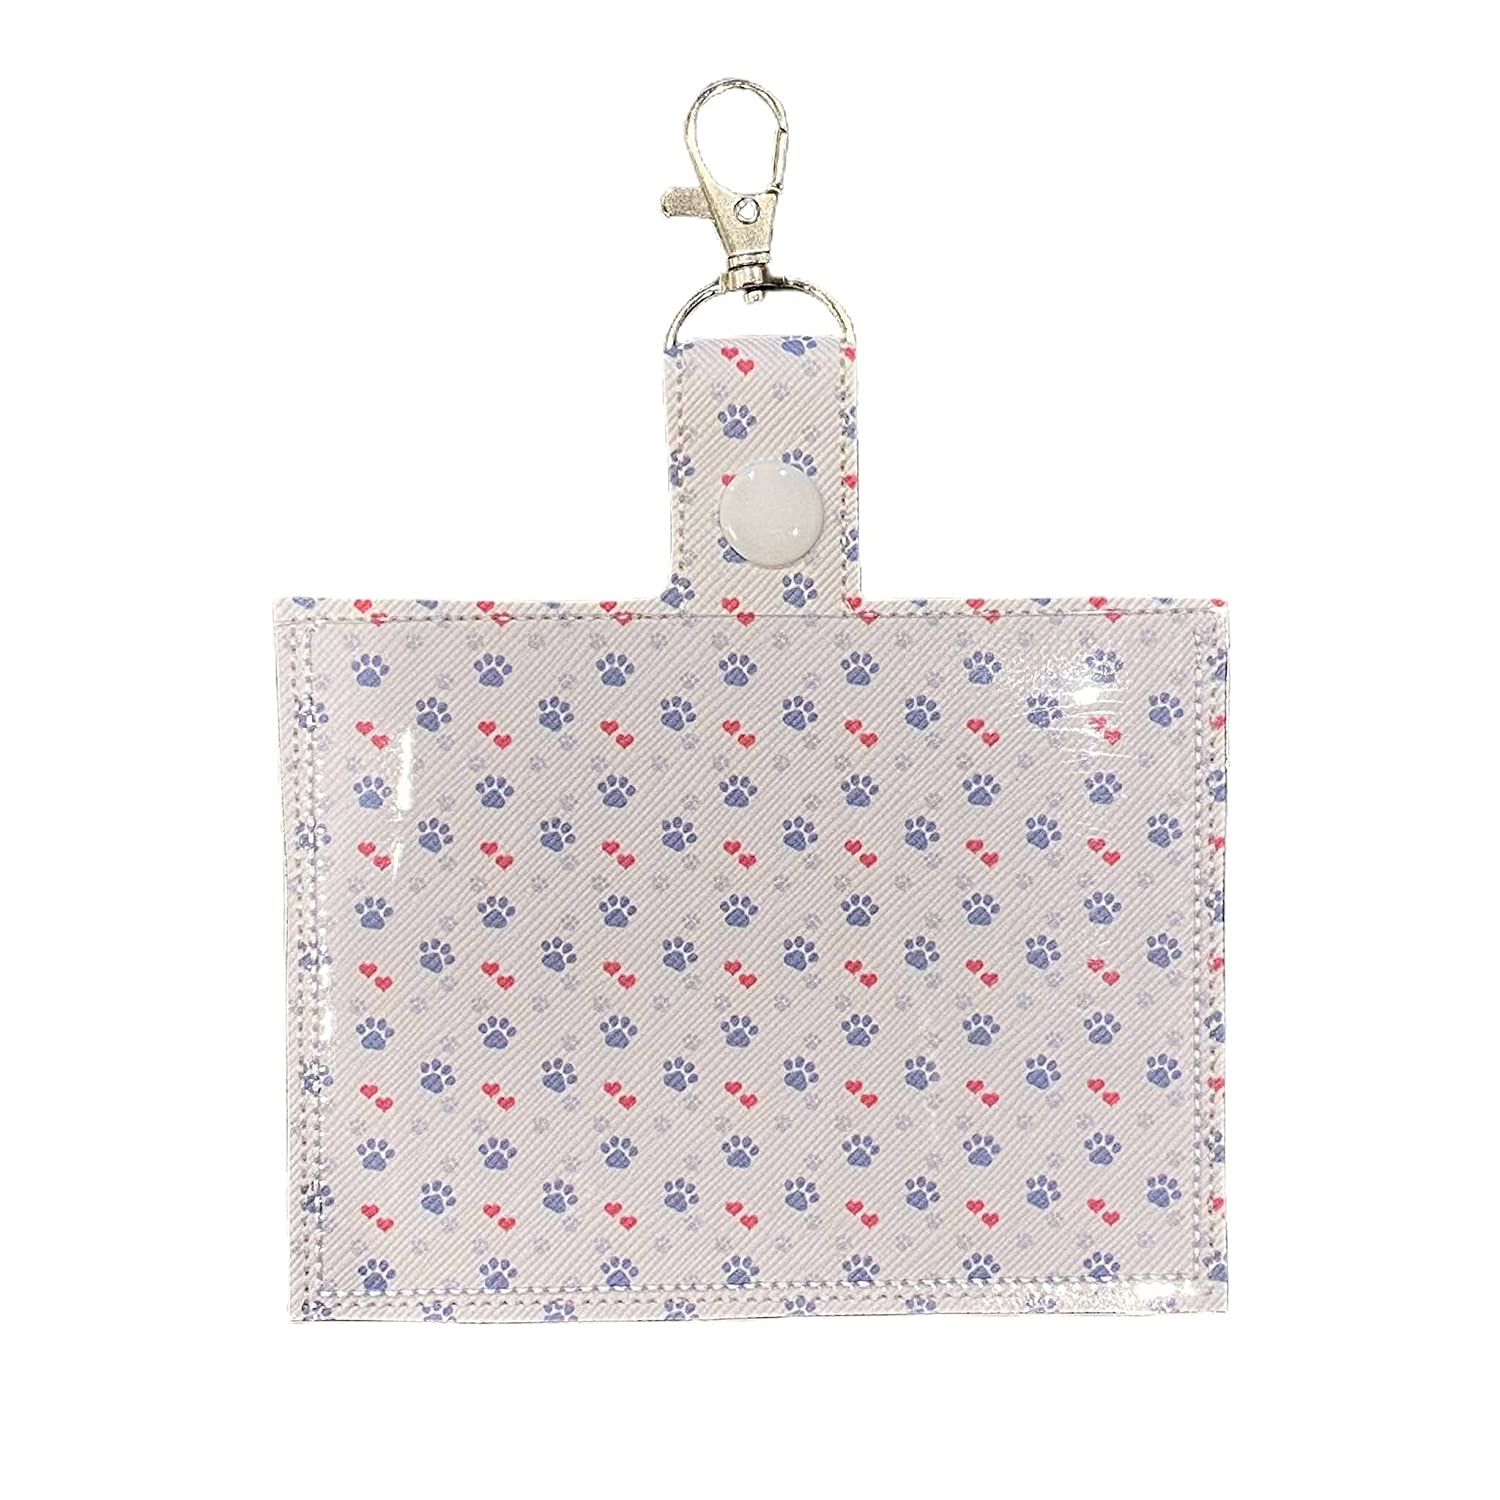 Patterned Time sale Vaccine Card Holder Super intense SALE Keychain and Clip with Paws Heart